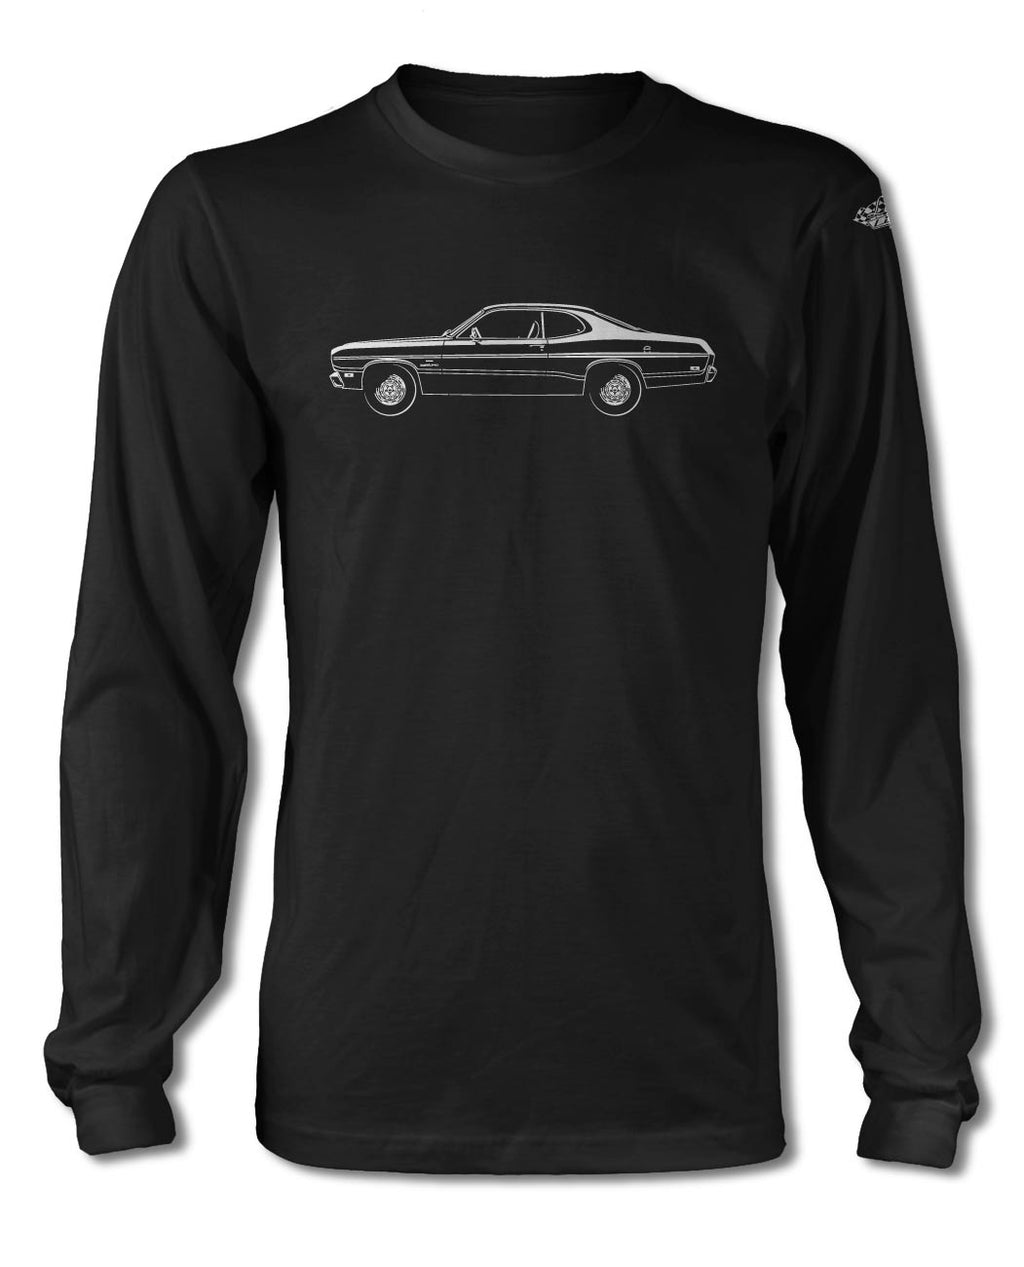 1970 Plymouth Duster Coupe T-Shirt - Long Sleeves - Side View